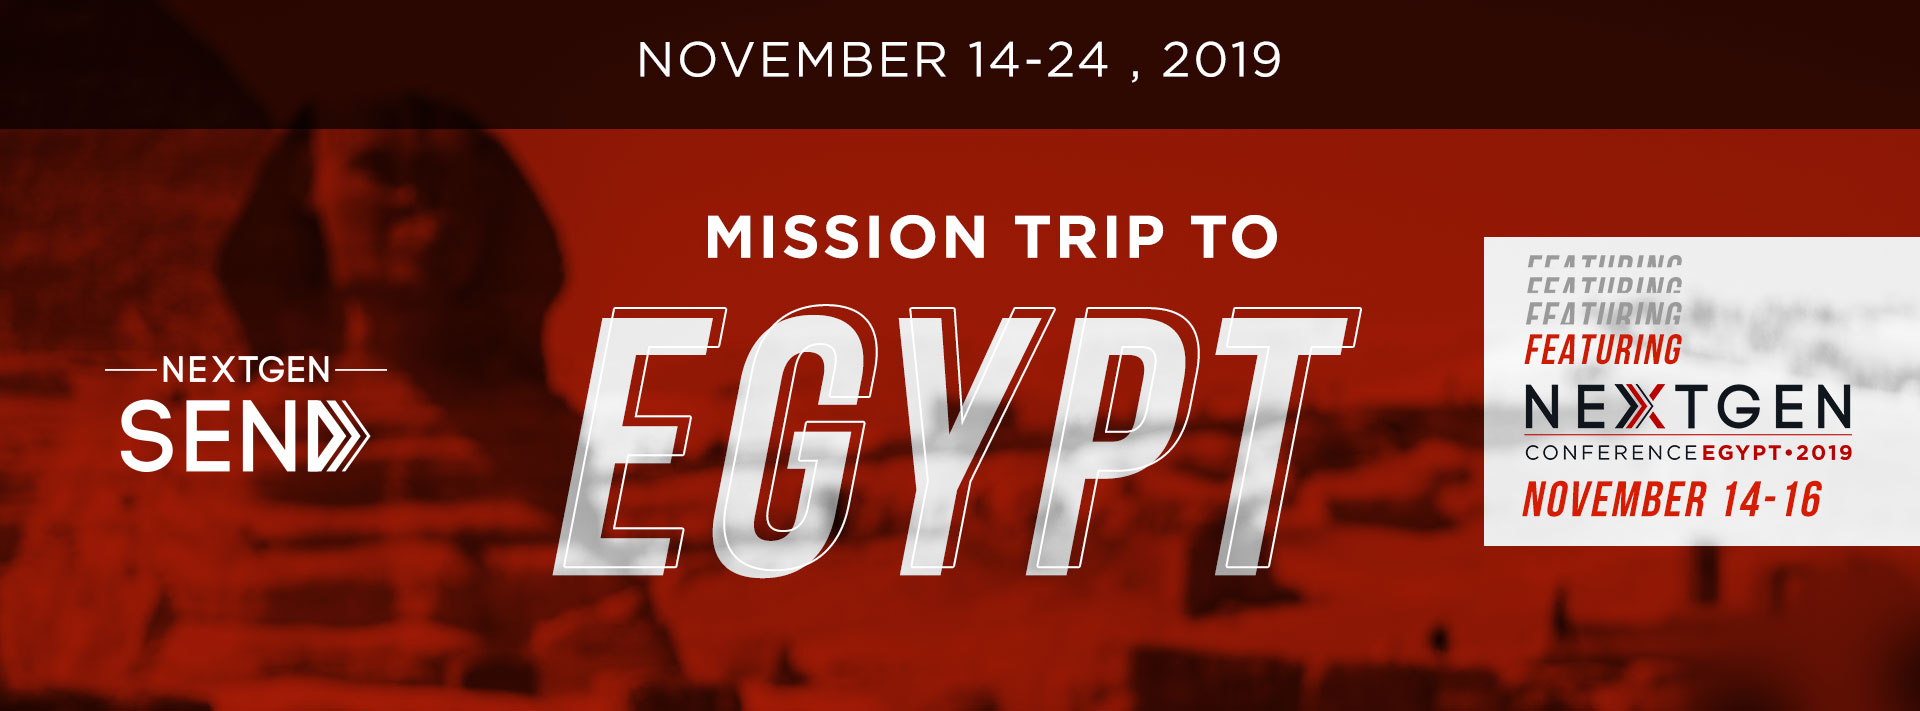 Nextgen mission trip to egypt